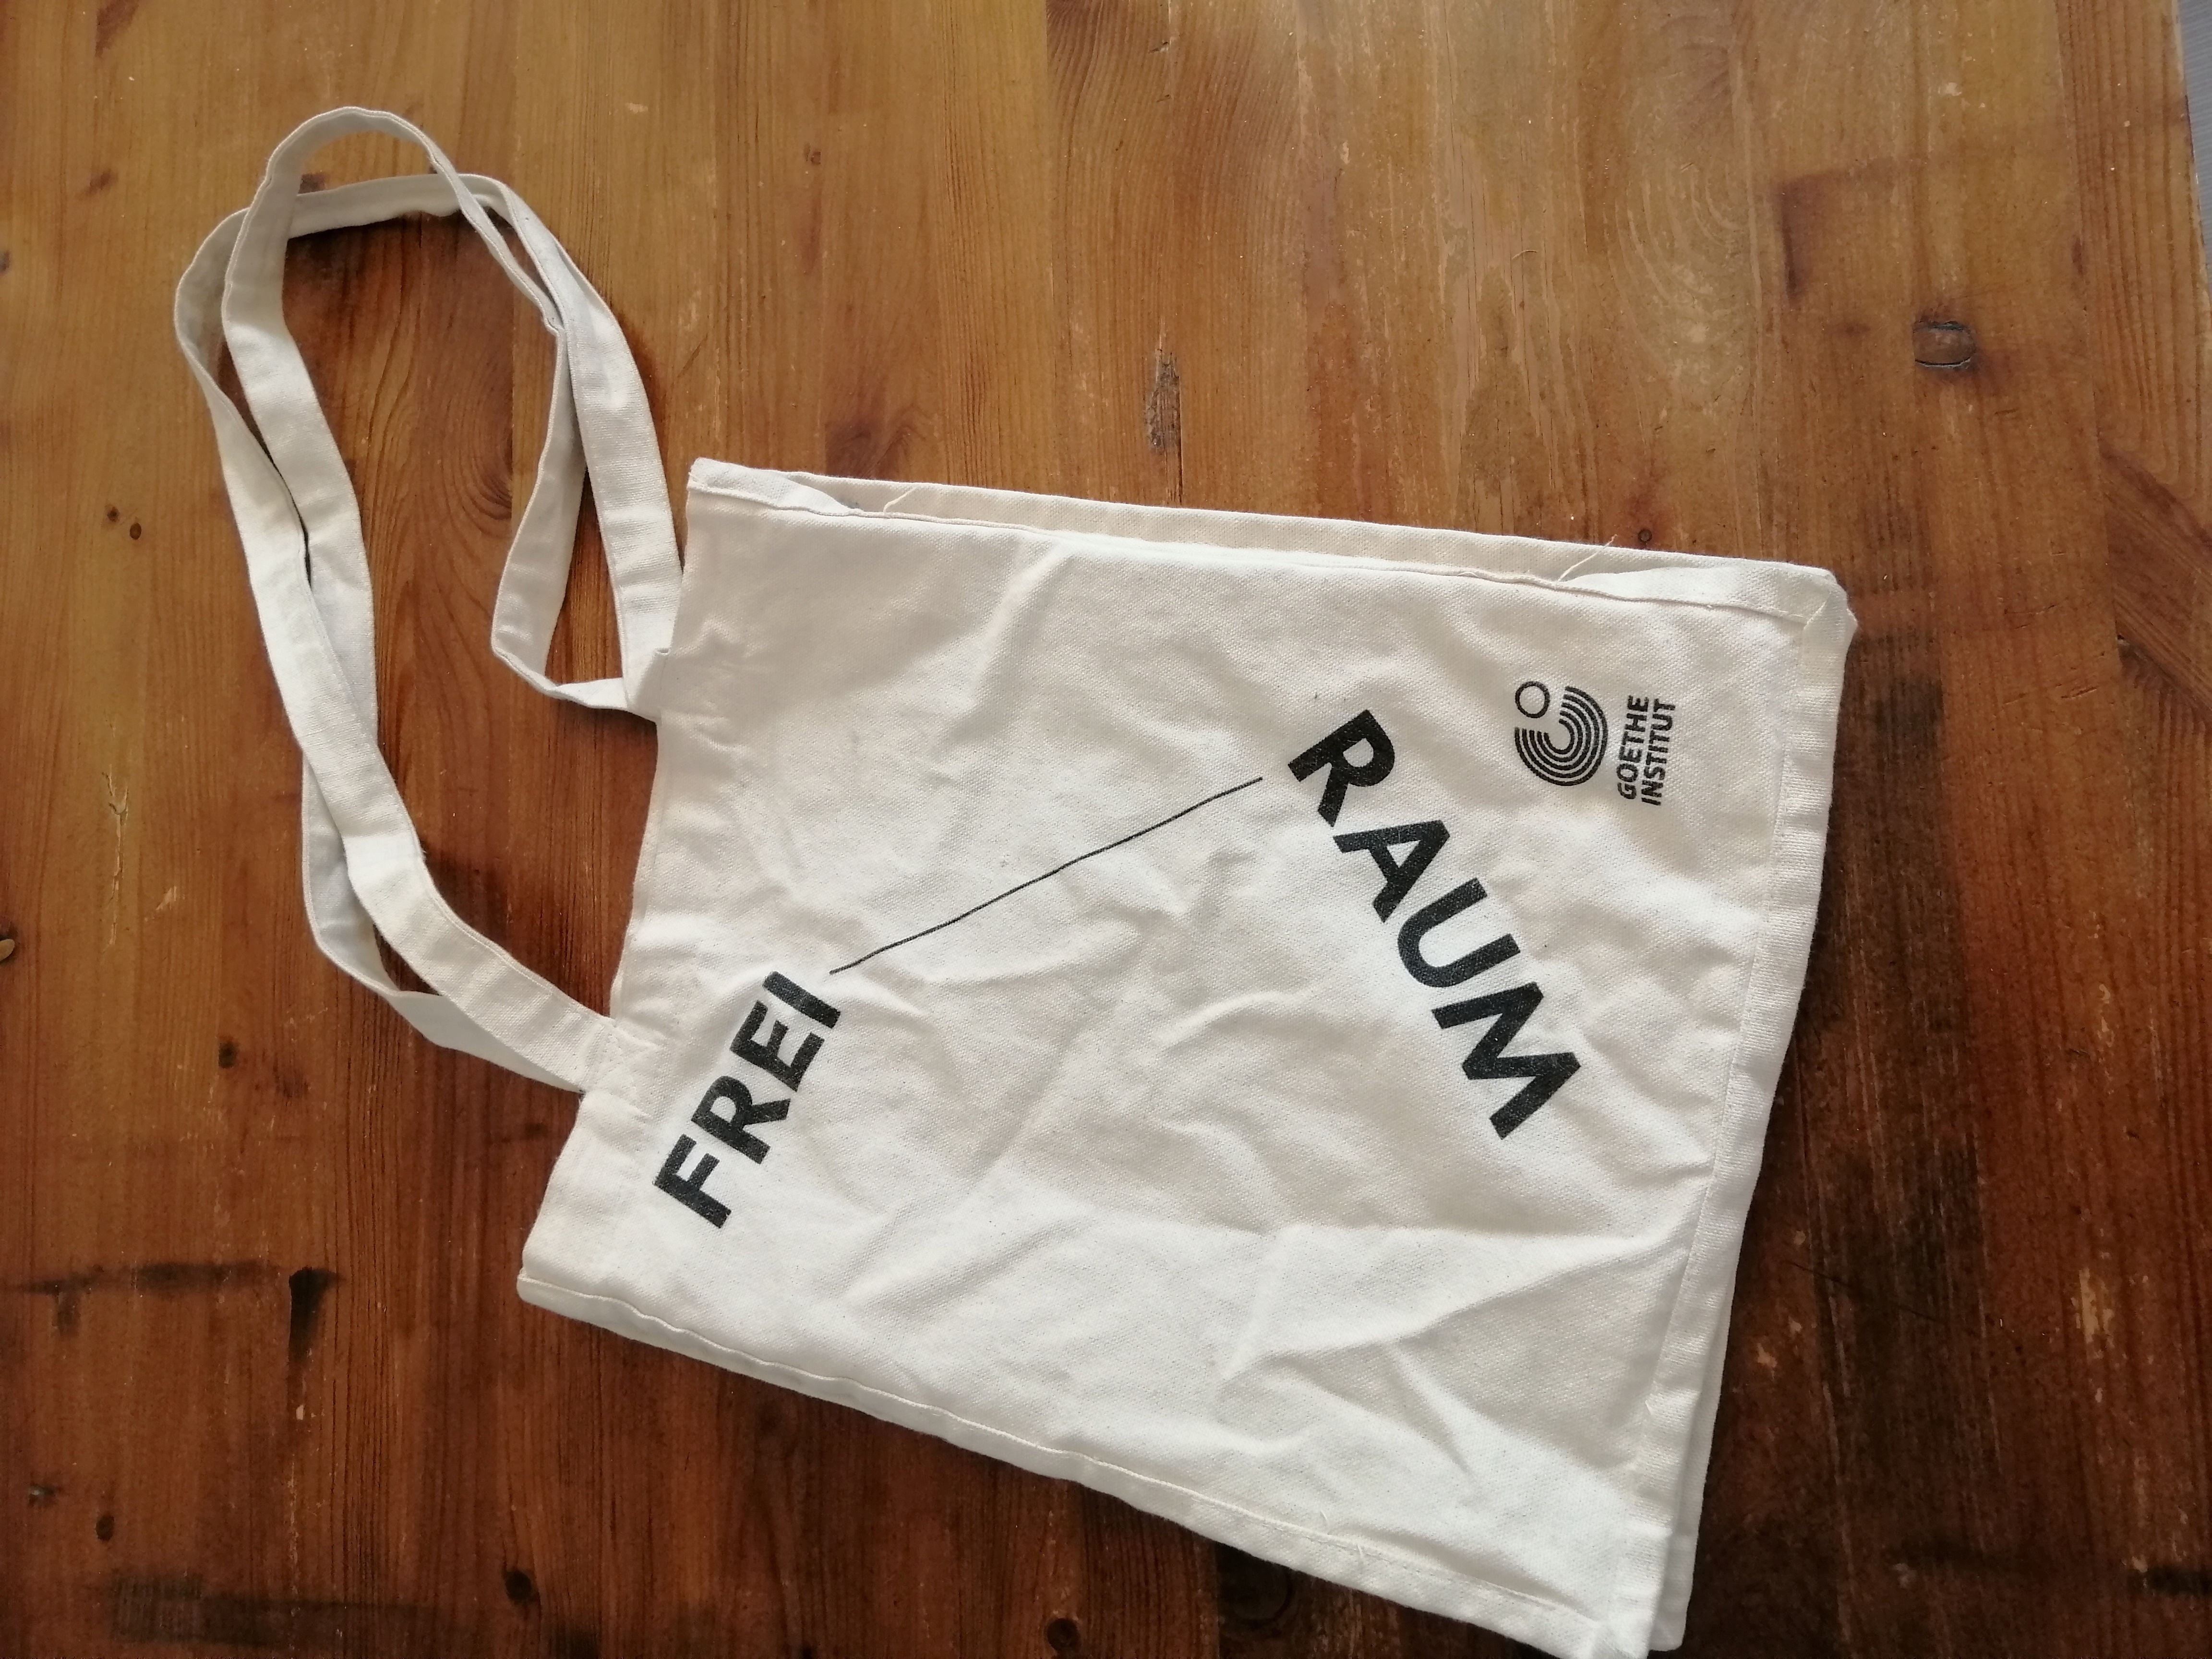 A white bag with Freiraum written on it